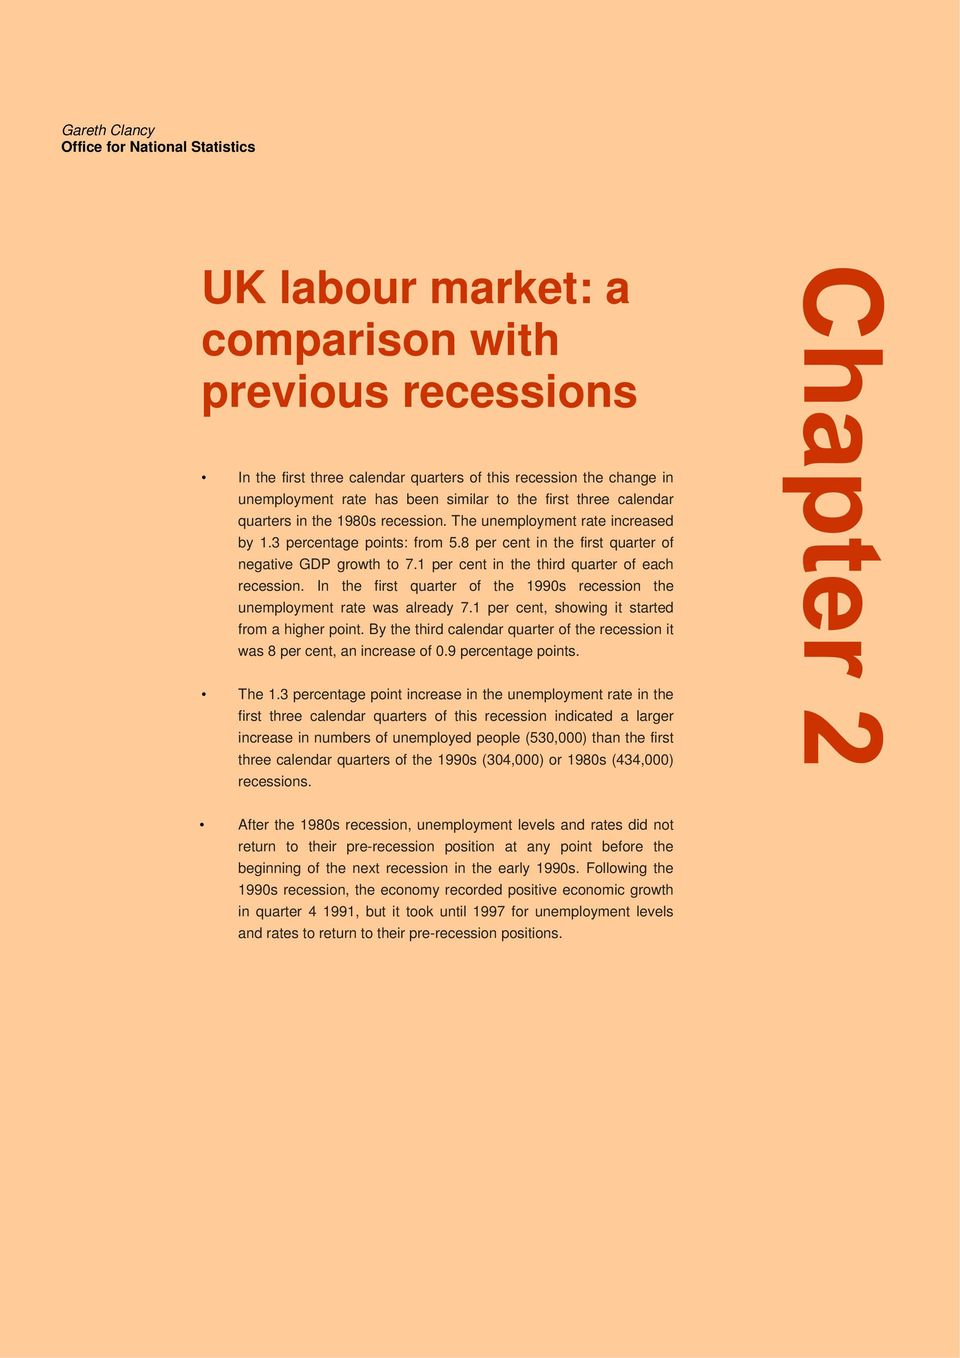 8 per cent in the first quarter of negative GDP growth to 7.1 per cent in the third quarter of each recession. In the first quarter of the 1990s recession the unemployment rate was already 7.